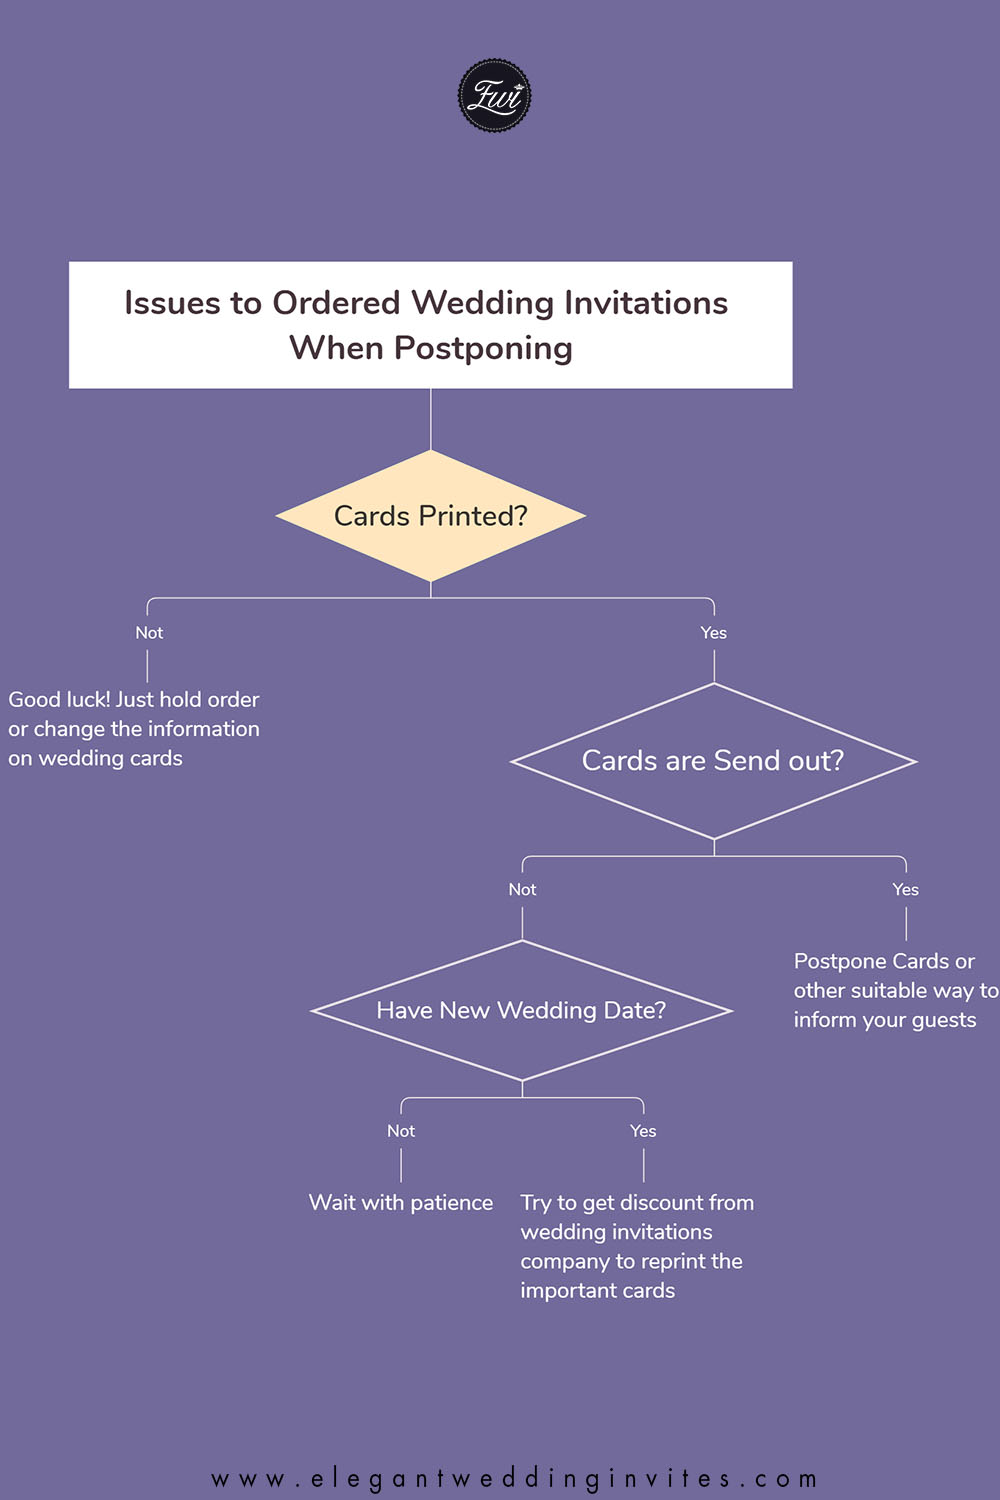 Issues to Ordered Wedding Invitations When Postponing